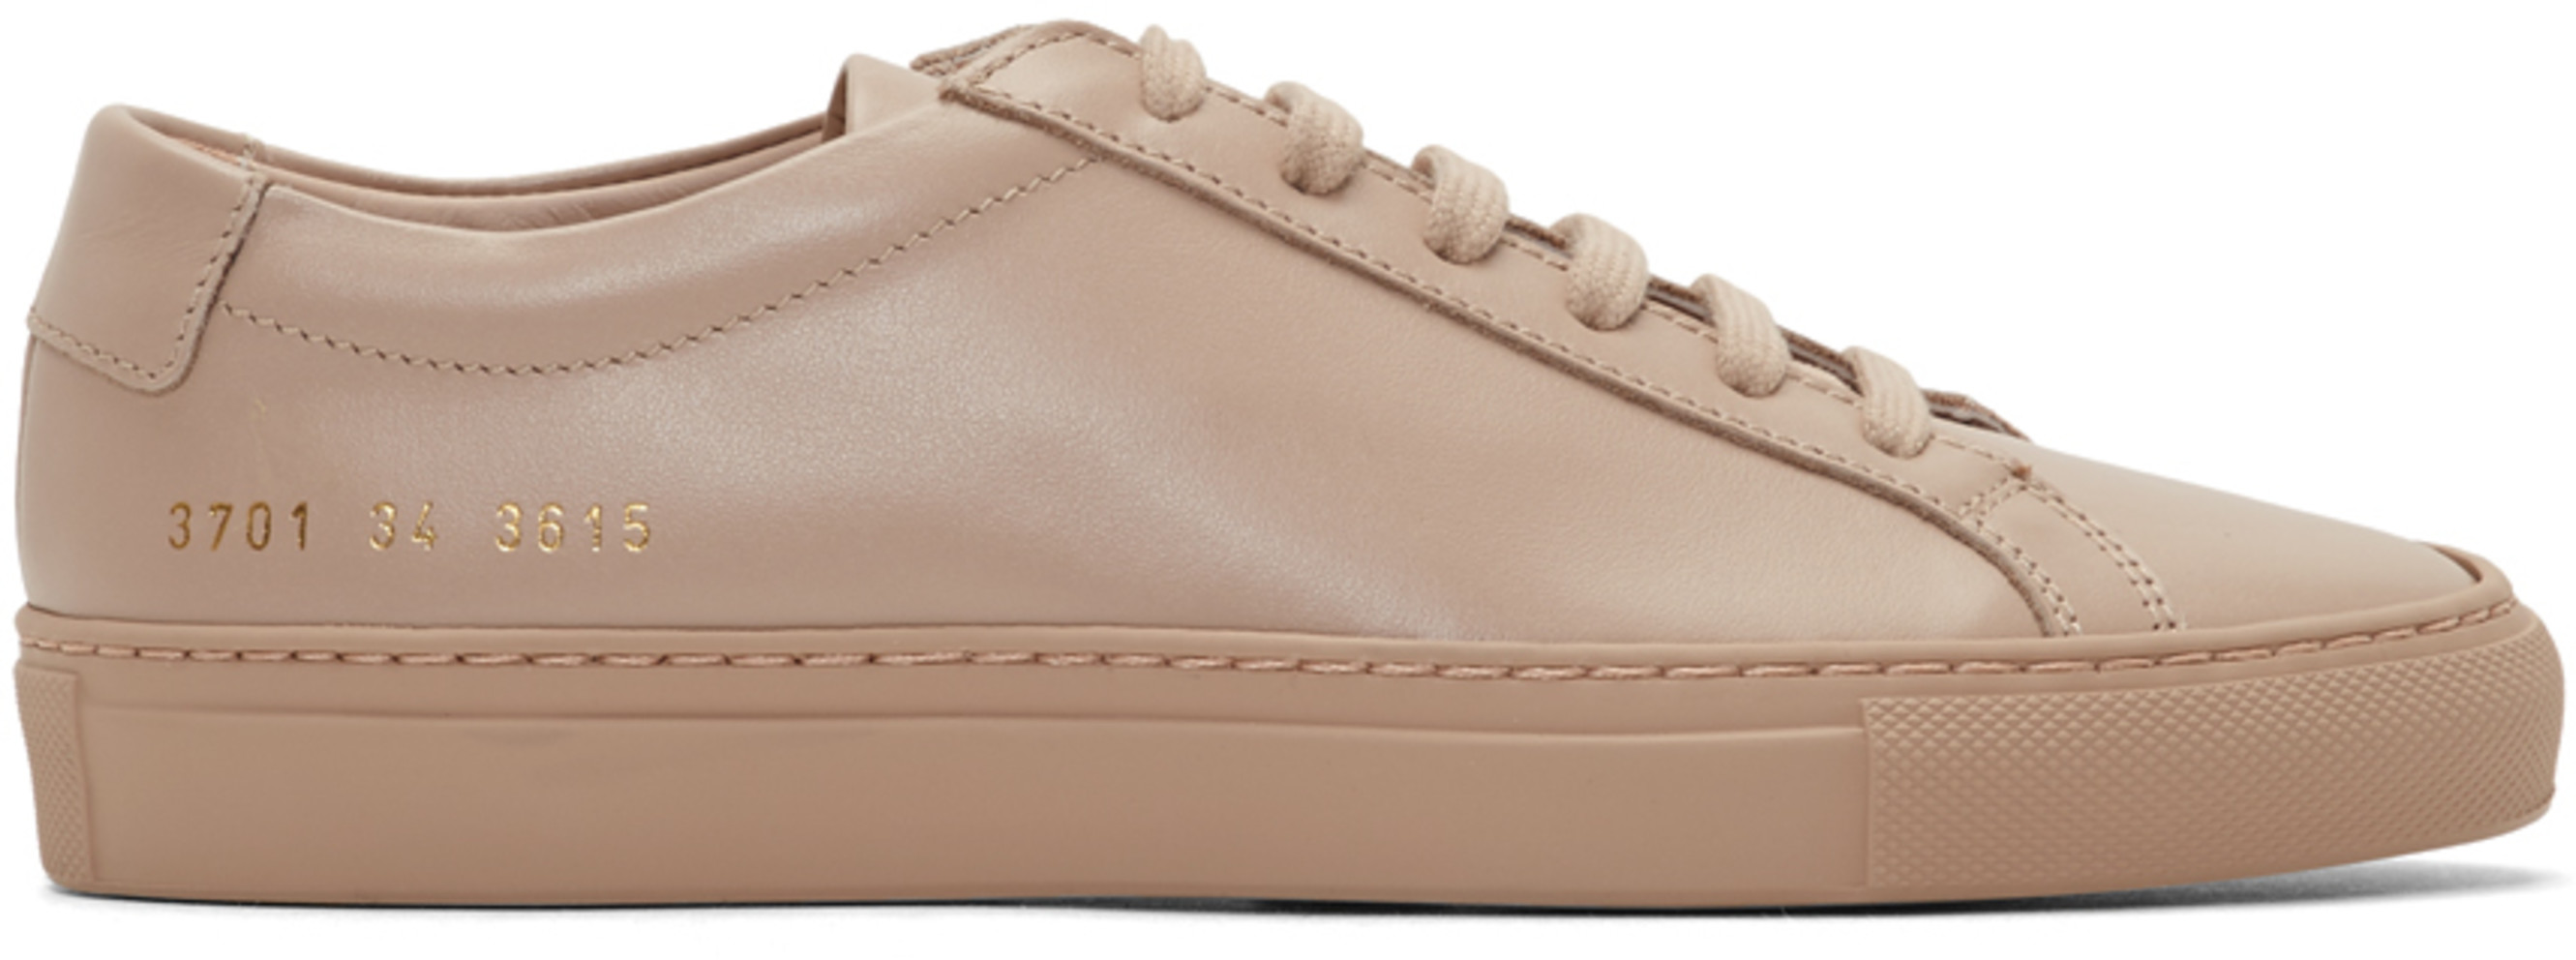 624d1e6c1951 Woman By Common Projects for Women SS19 Collection